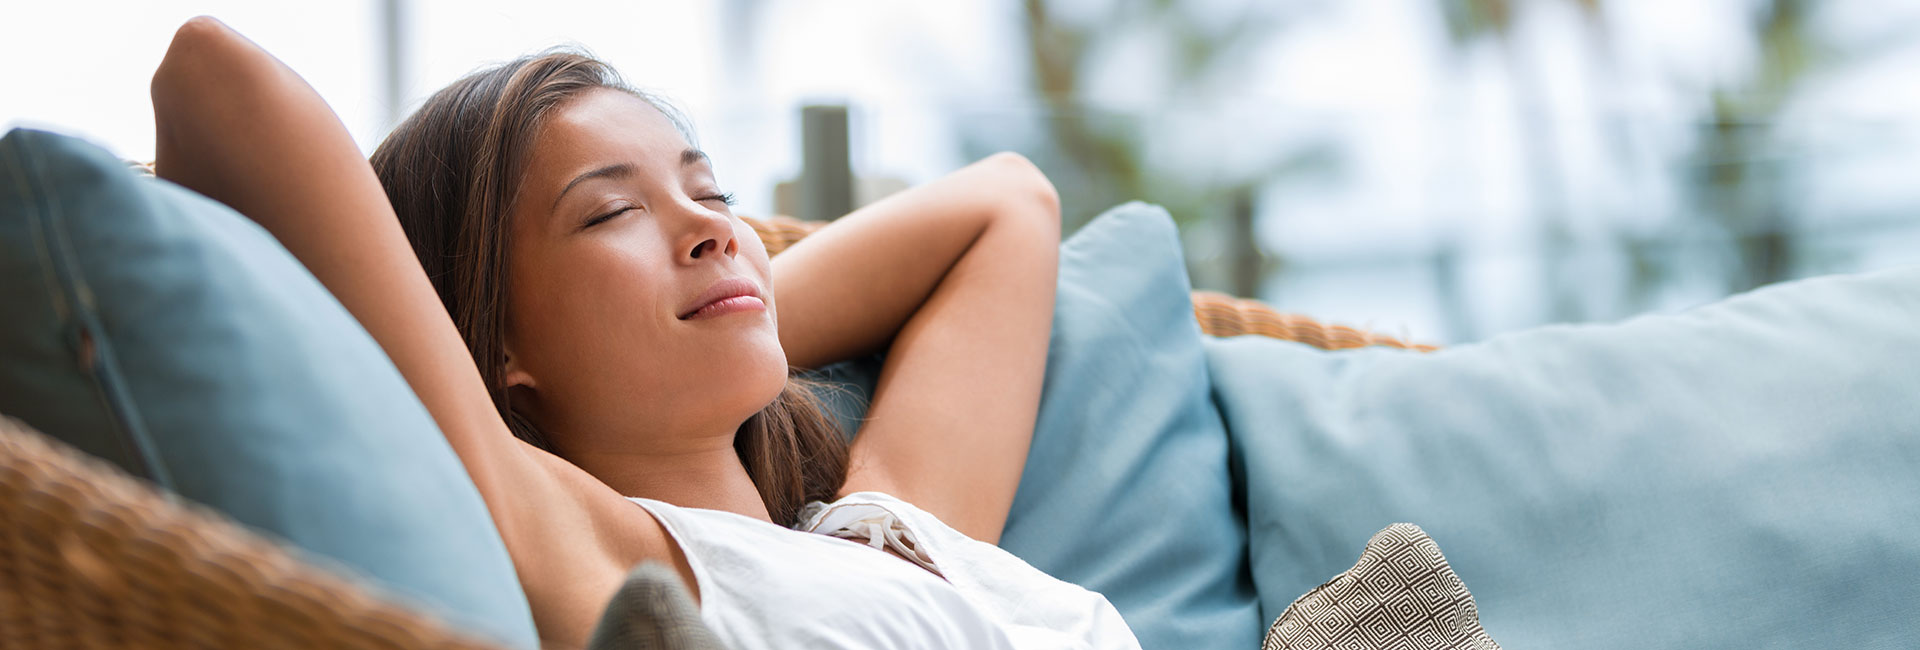 Woman Relaxing While On Vacations